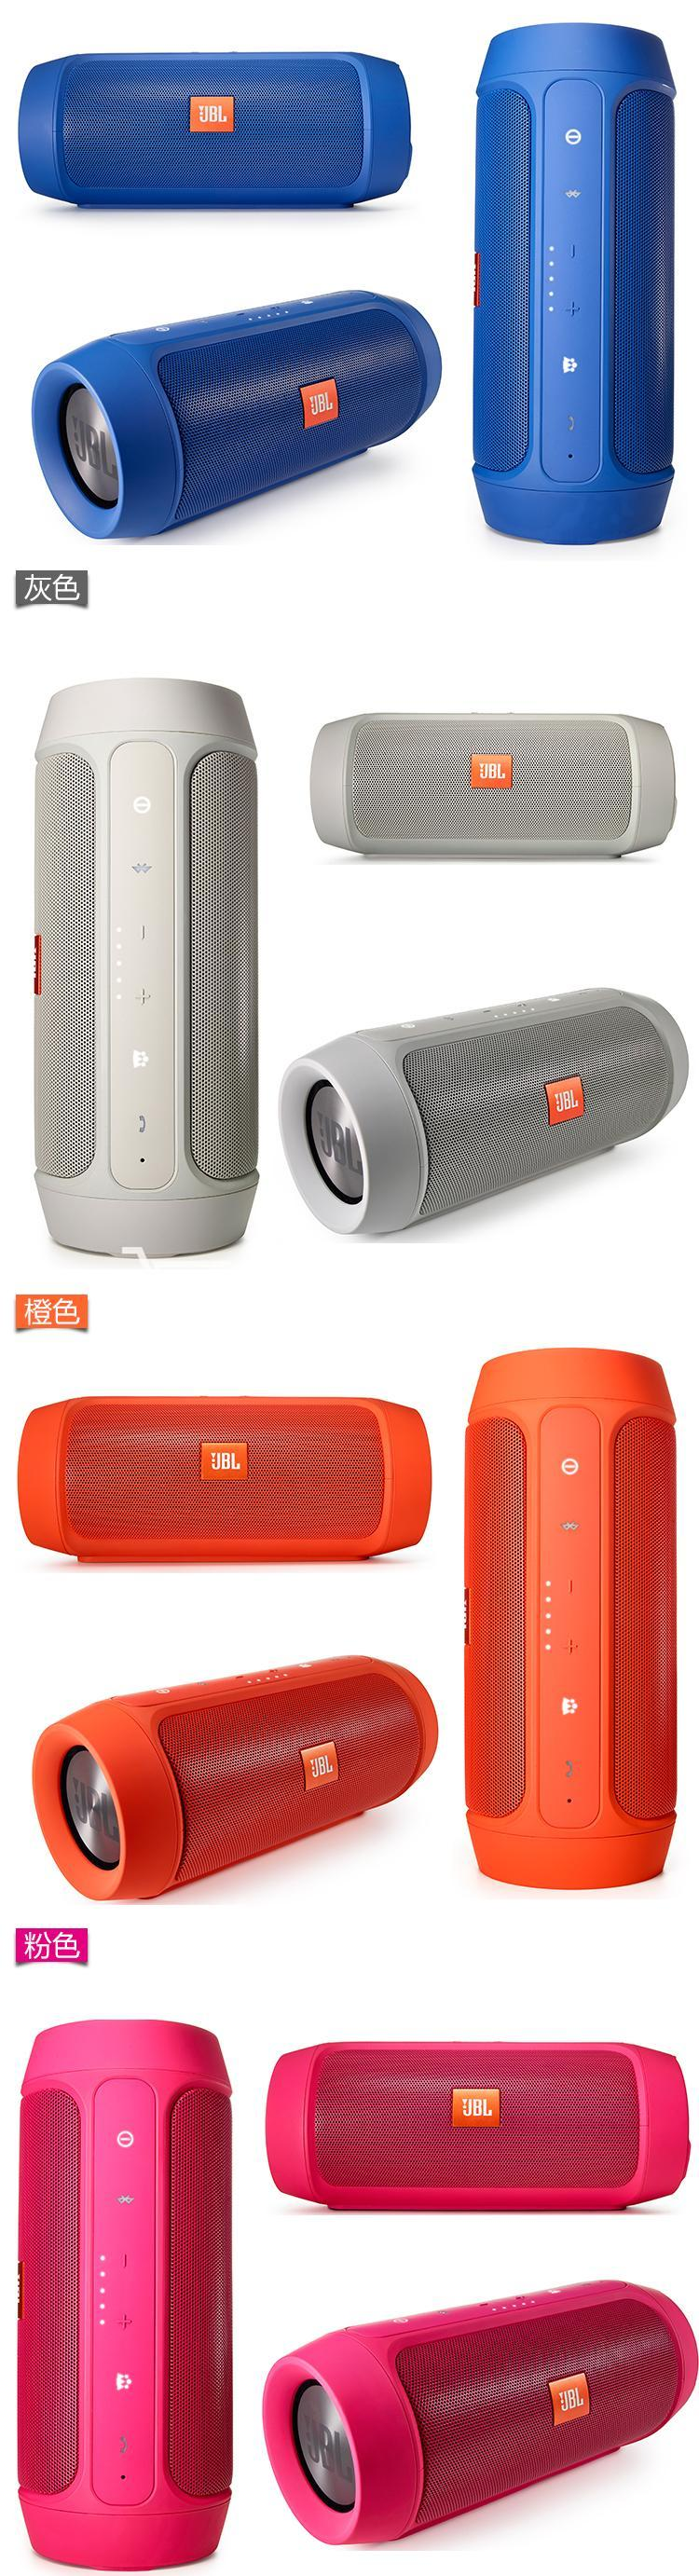 jbl charge 2 portable bluetooth speaker with usb charger power bank mobile phone accessories special best offer buy one lk sri lanka 08946 JBL Charge 2 Portable Bluetooth Speaker with USB Charger Power Bank